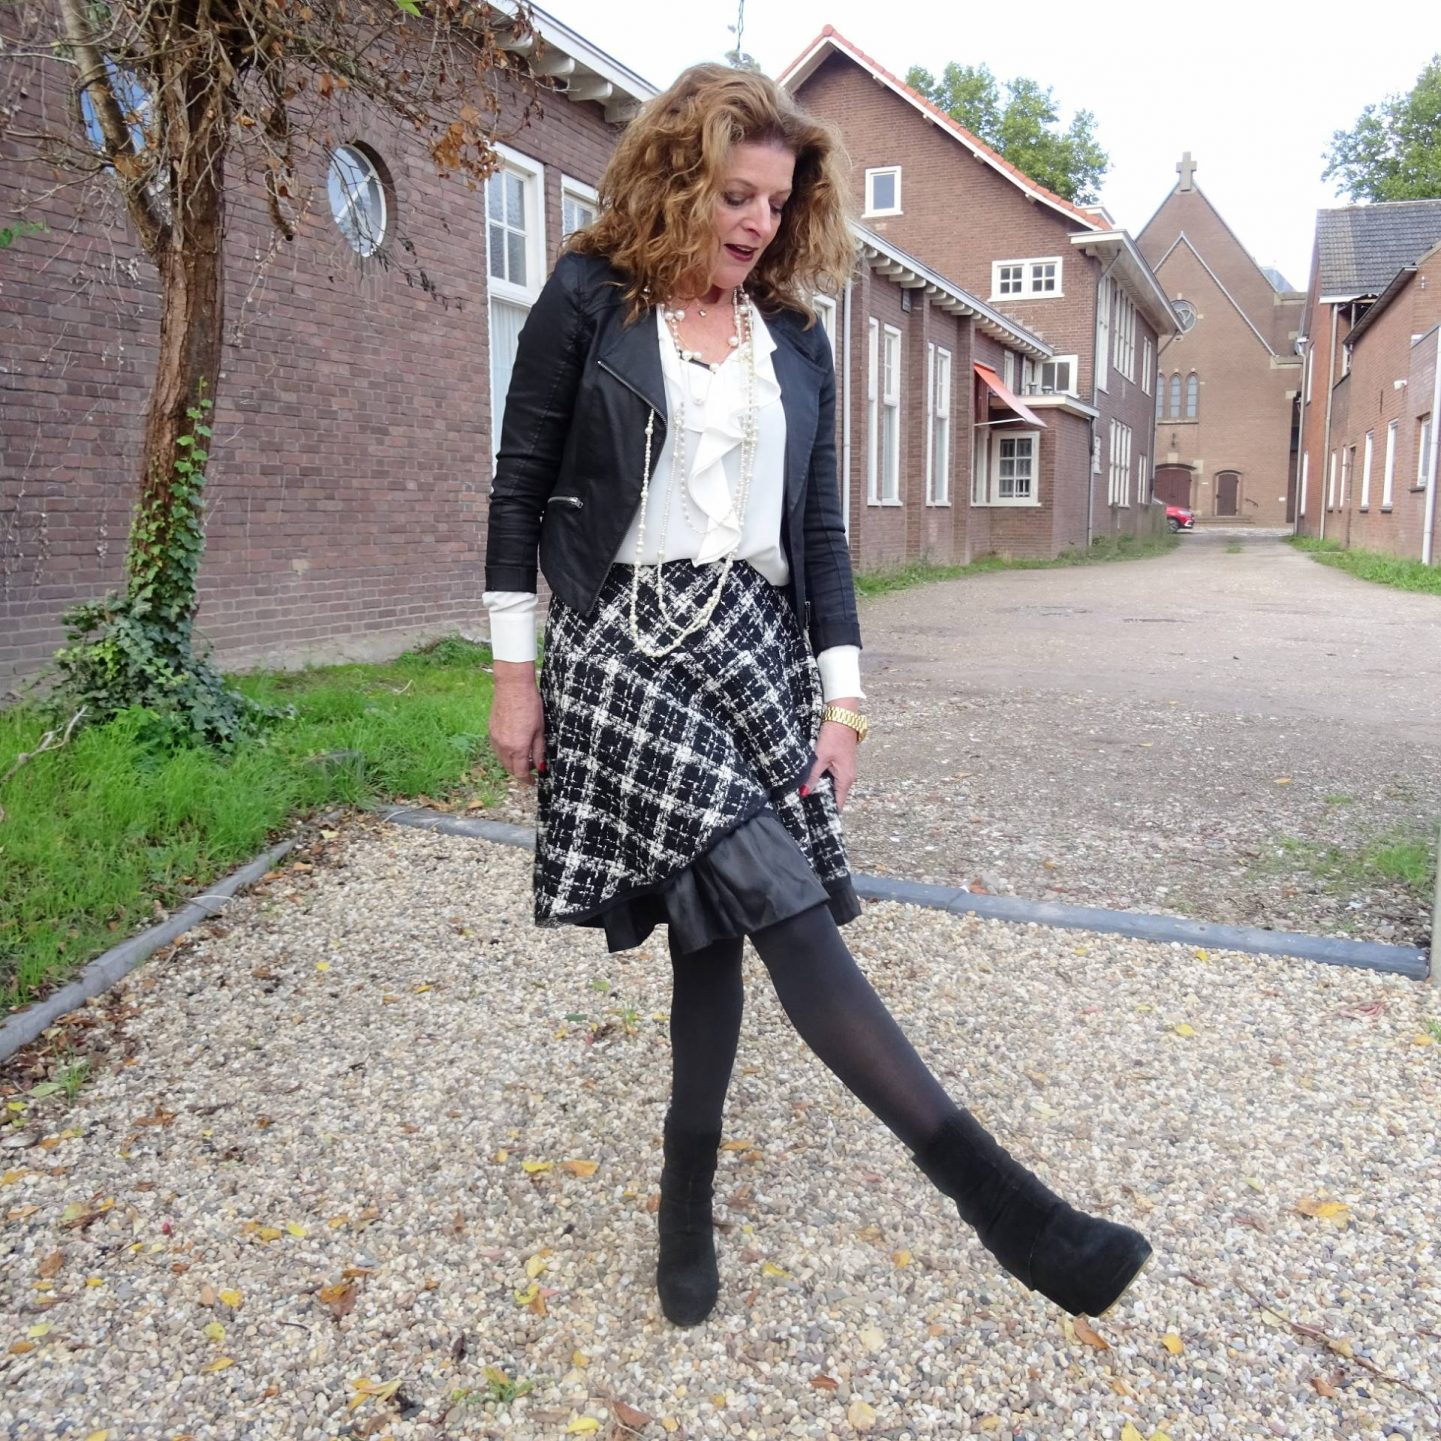 Check Out Preloved Fashion - The Thrifty Six October Challenge, Nancy's Fashion Style